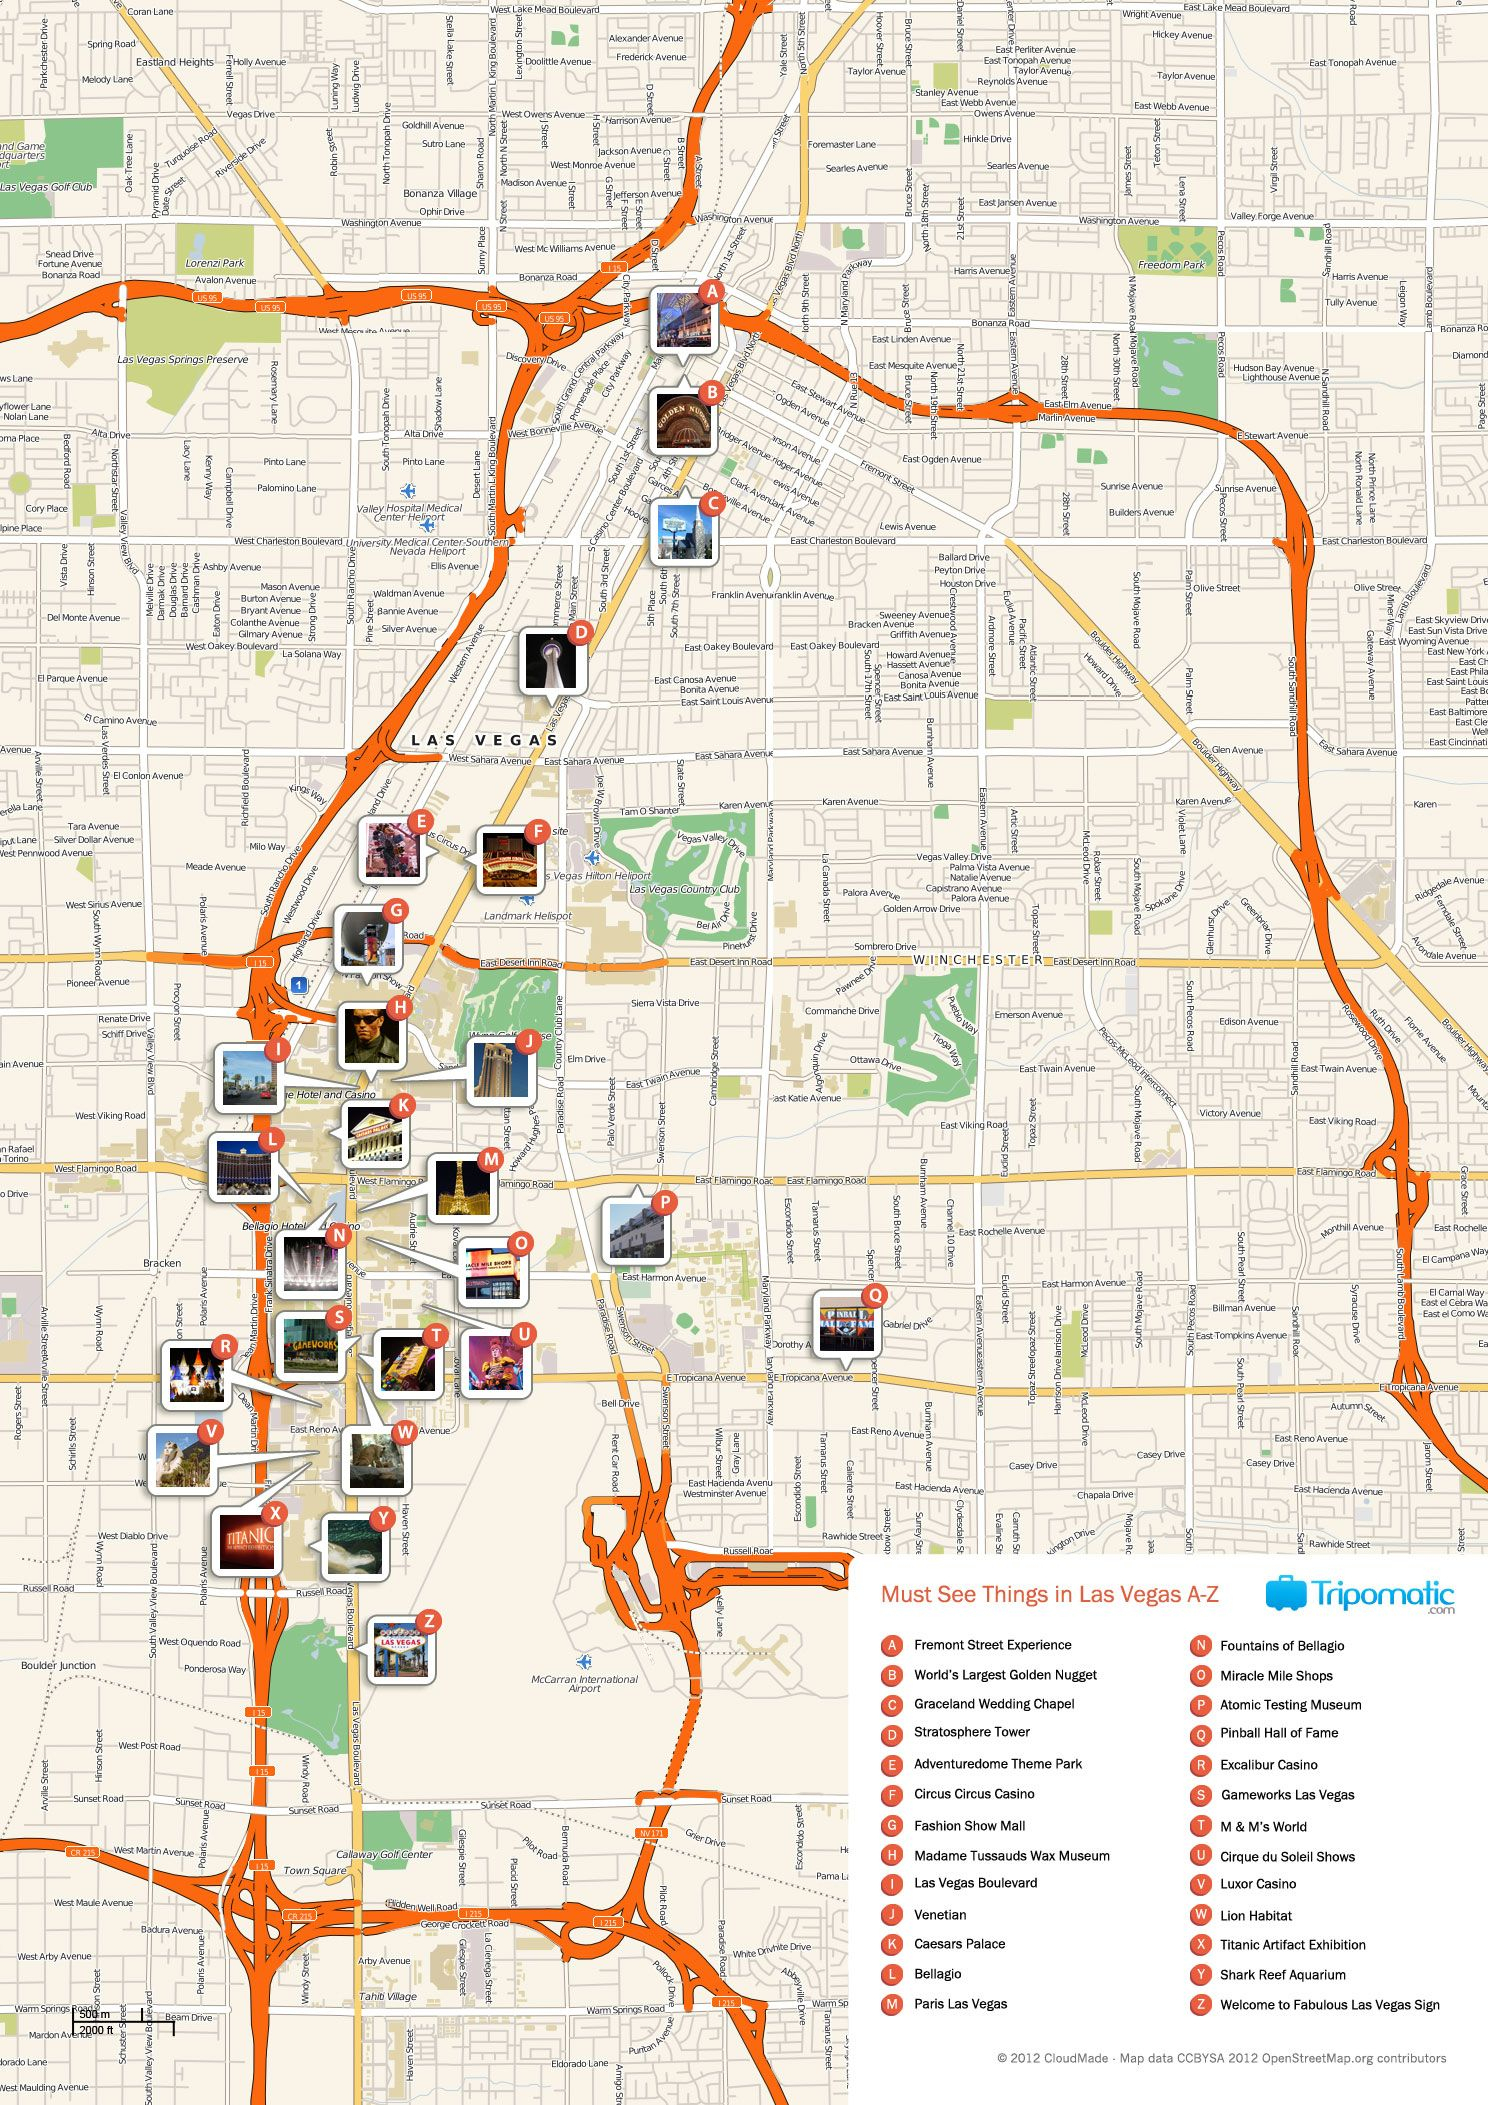 Free Printable Map Of Las Vegas Attractions. | Free Tourist Maps - Printable Las Vegas Street Maps